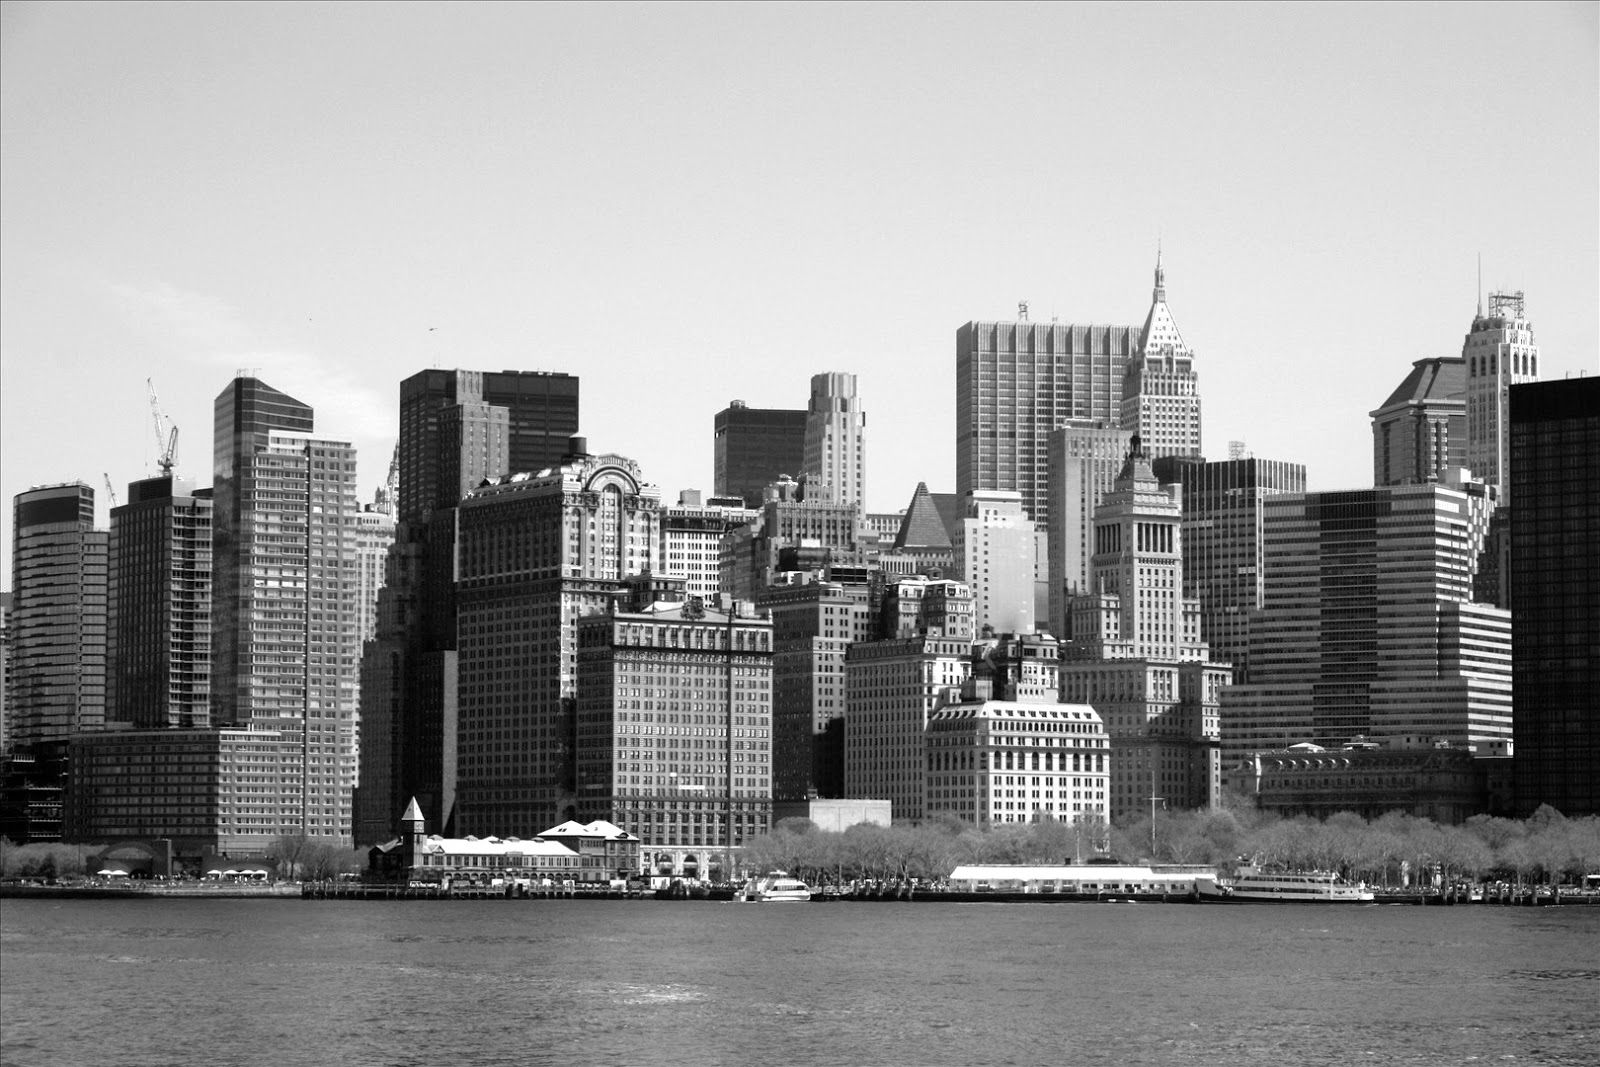 city and buildings - photo #13